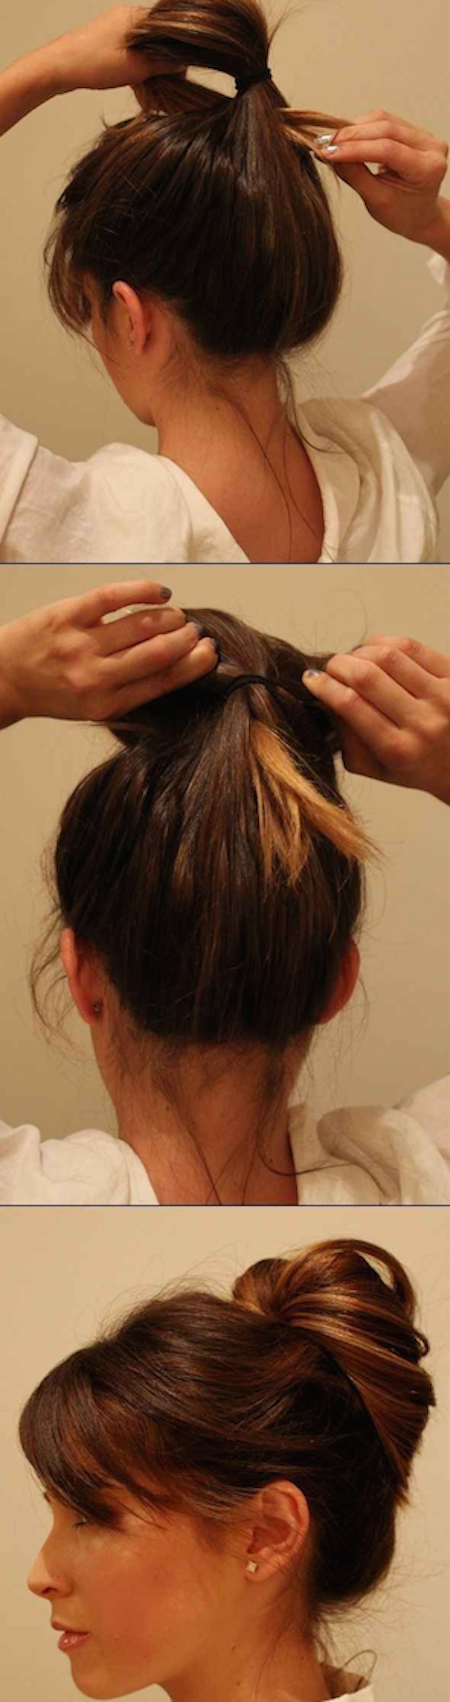 You can put it in a ponytail first and then pull the tail end through and pin.